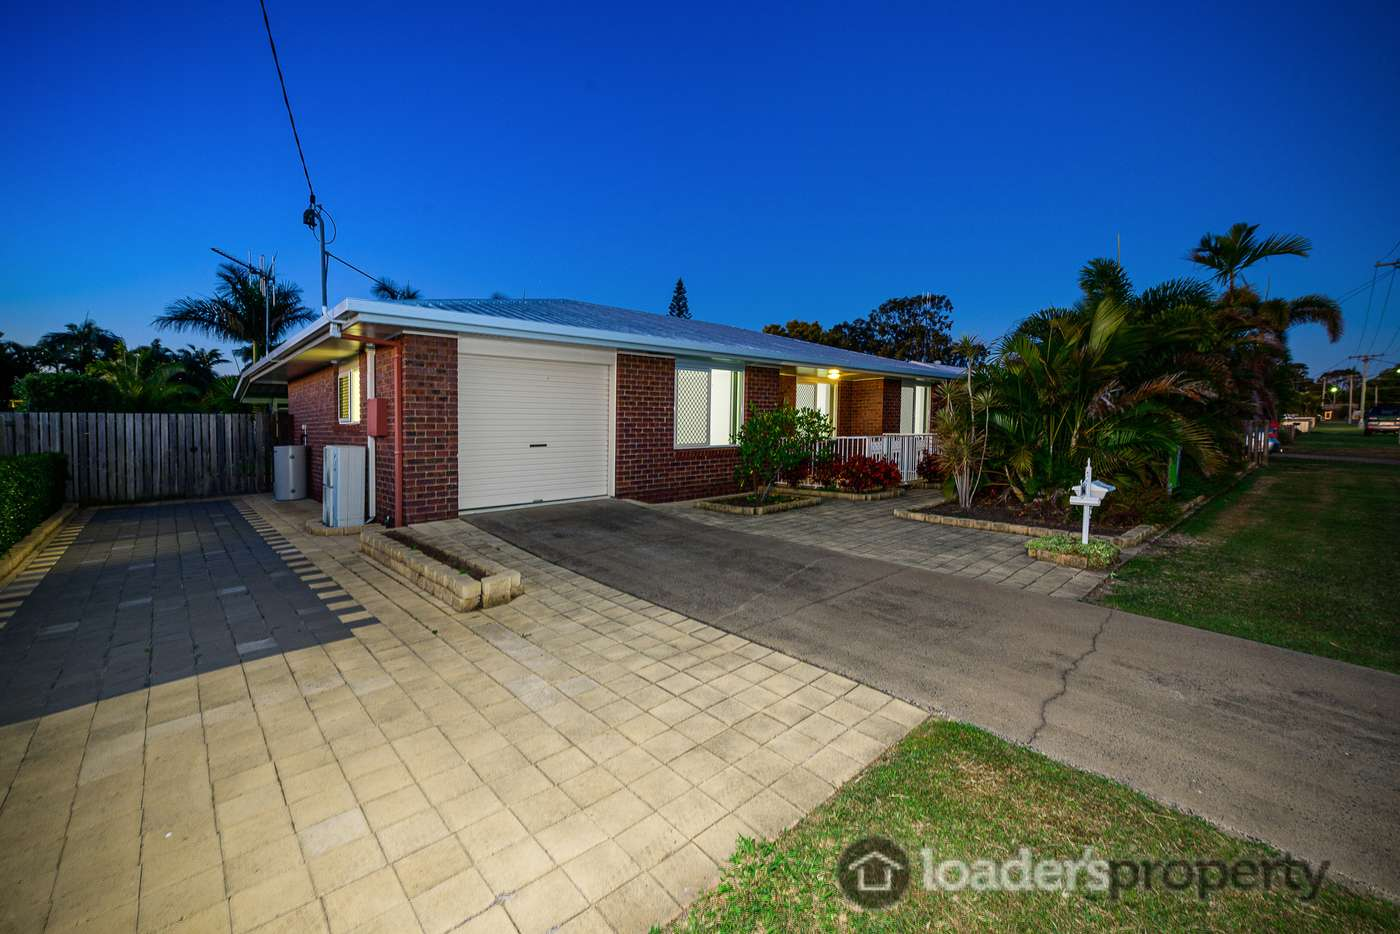 Main view of Homely house listing, 14 Kinghorn St, Kalkie QLD 4670